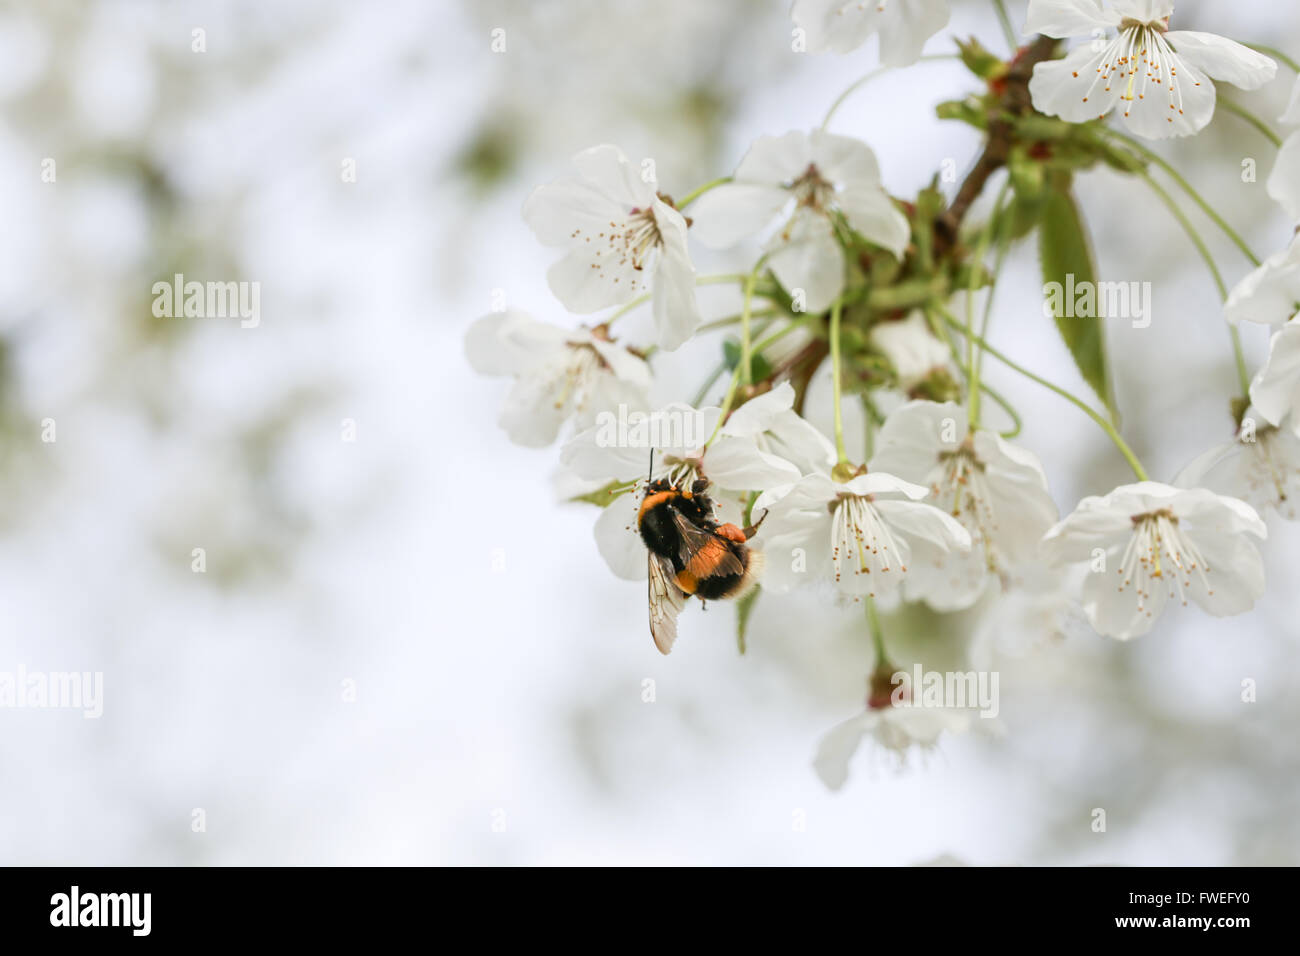 Bumblebee. Save the bees - Stock Image